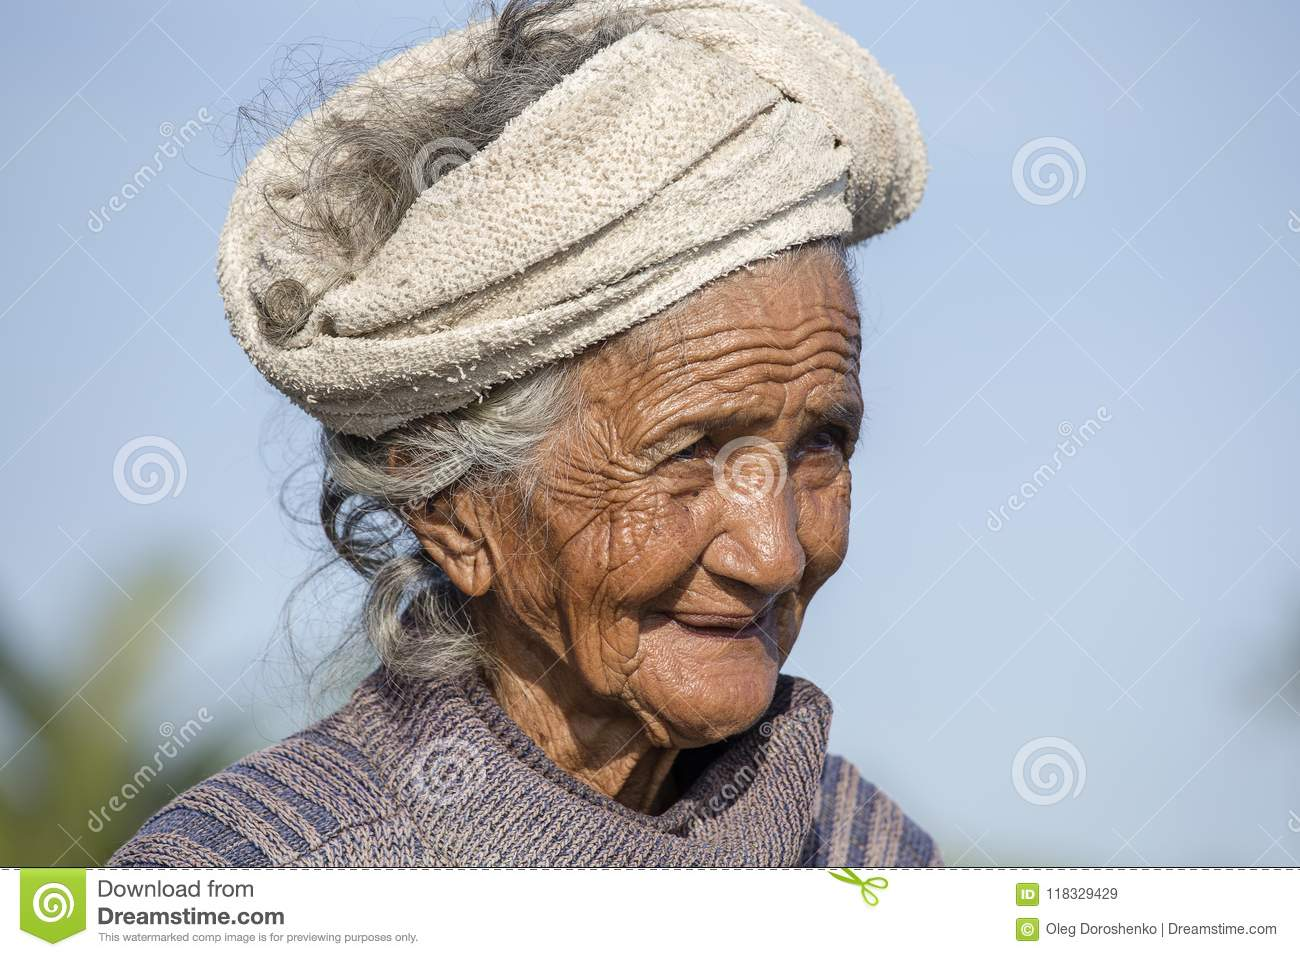 Image of: Sad Ubud Bali Indonesia March 19 2015 Portrait Old Poor Woman To Bali Island Inhabitants Of Bali Are Kind And Friendly Even In Old Age Dreamstimecom Portrait Old Poor Woman To Bali Island Inhabitants Of Bali Are Kind